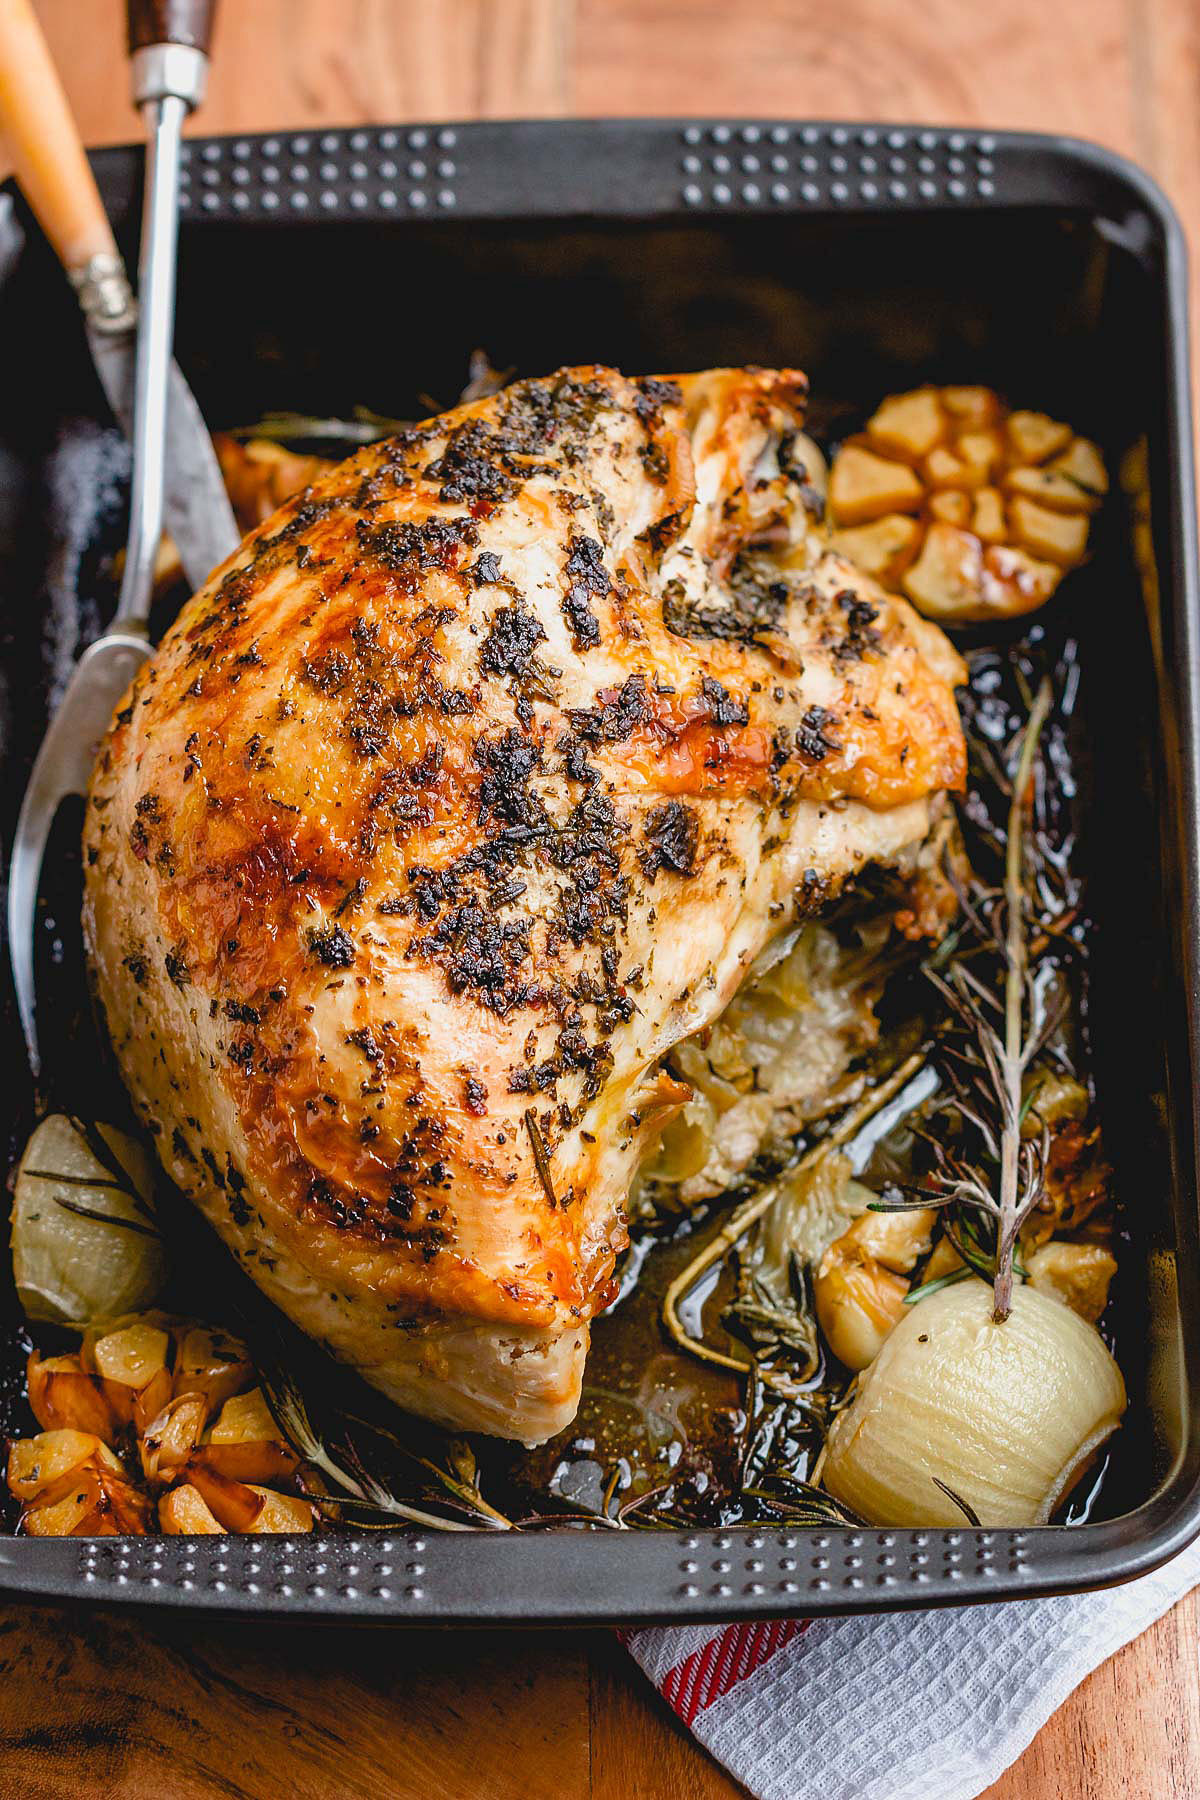 Turkey Breast Recipe For Thanksgiving  Roasted Turkey Breast Recipe with Garlic Herb Butter